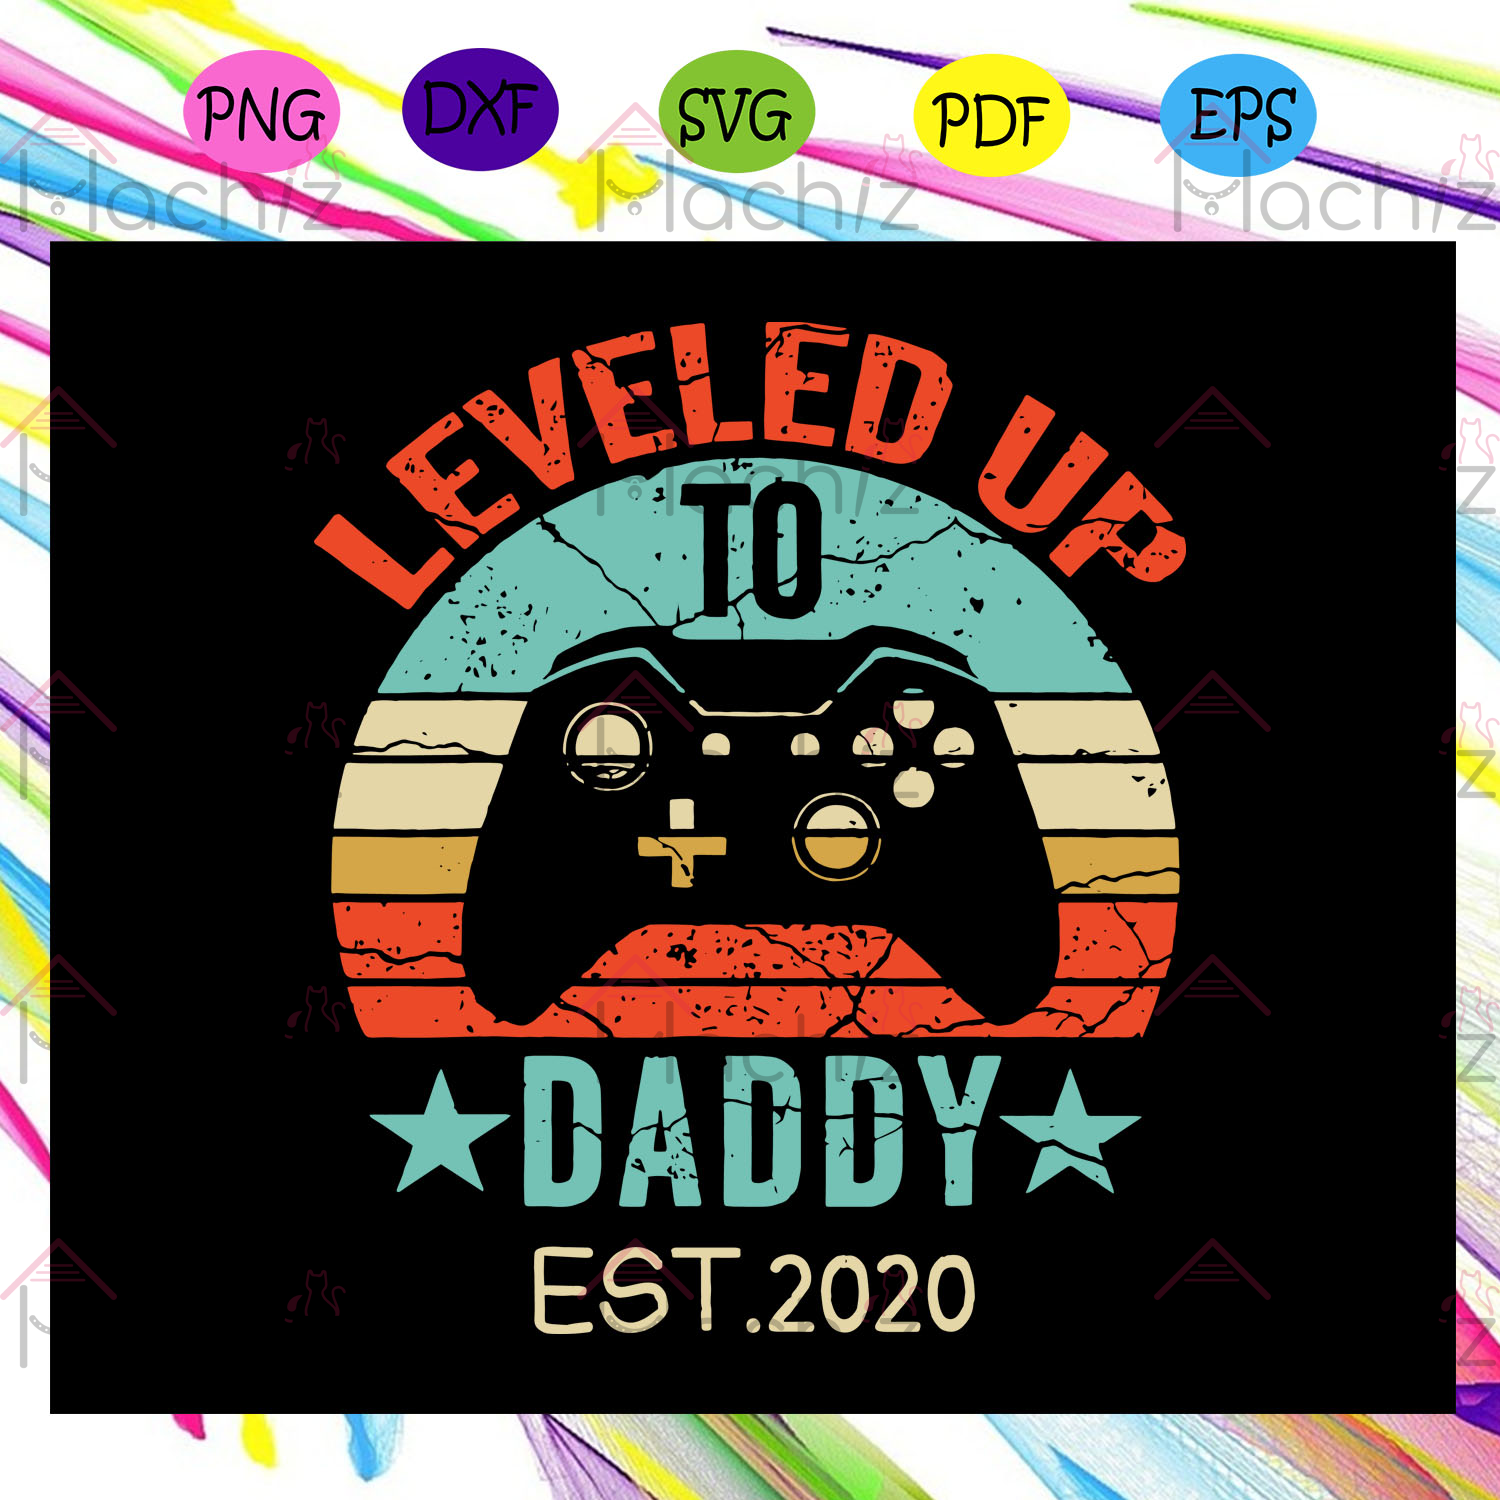 Leveled Up To Daddy Est.2020 Svg, Leveled Up To Daddy Svg, Gamer Dad Svg, Daddy Gift Svg, Gifts For Dad Svg, Fathers Day Svg, Fathers Day Gifts, Files For Silhouette, Files For Cricut, SVG, DXF, EPS, PNG, Instant Download